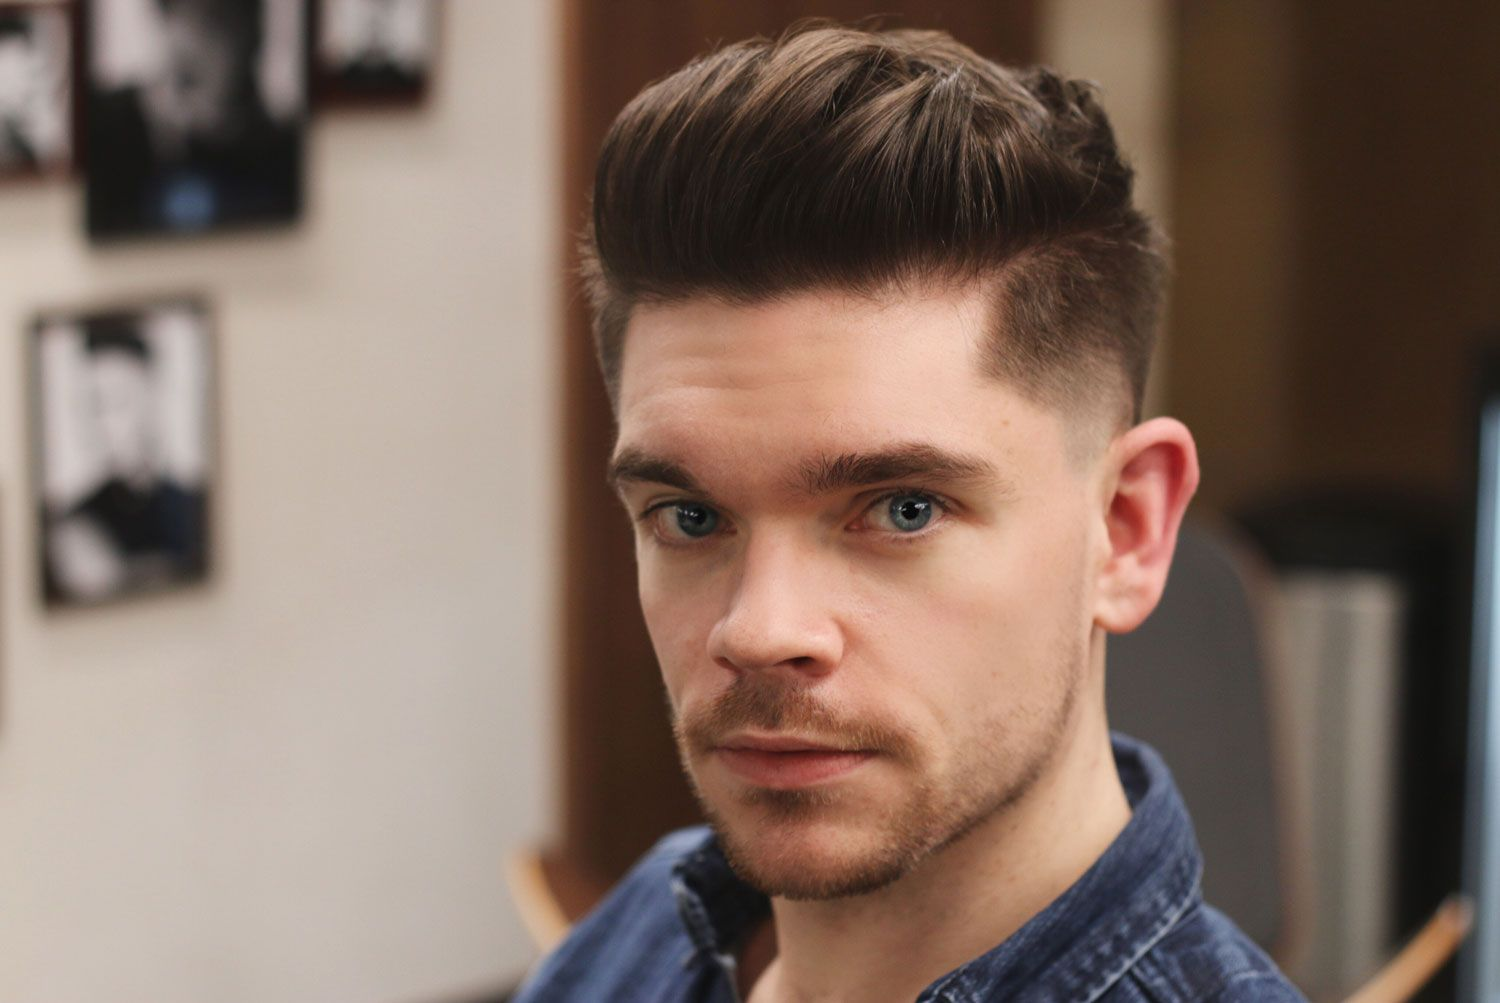 Top Mens Hairstyles The Best Men's Haircut For 2016  Haircuts